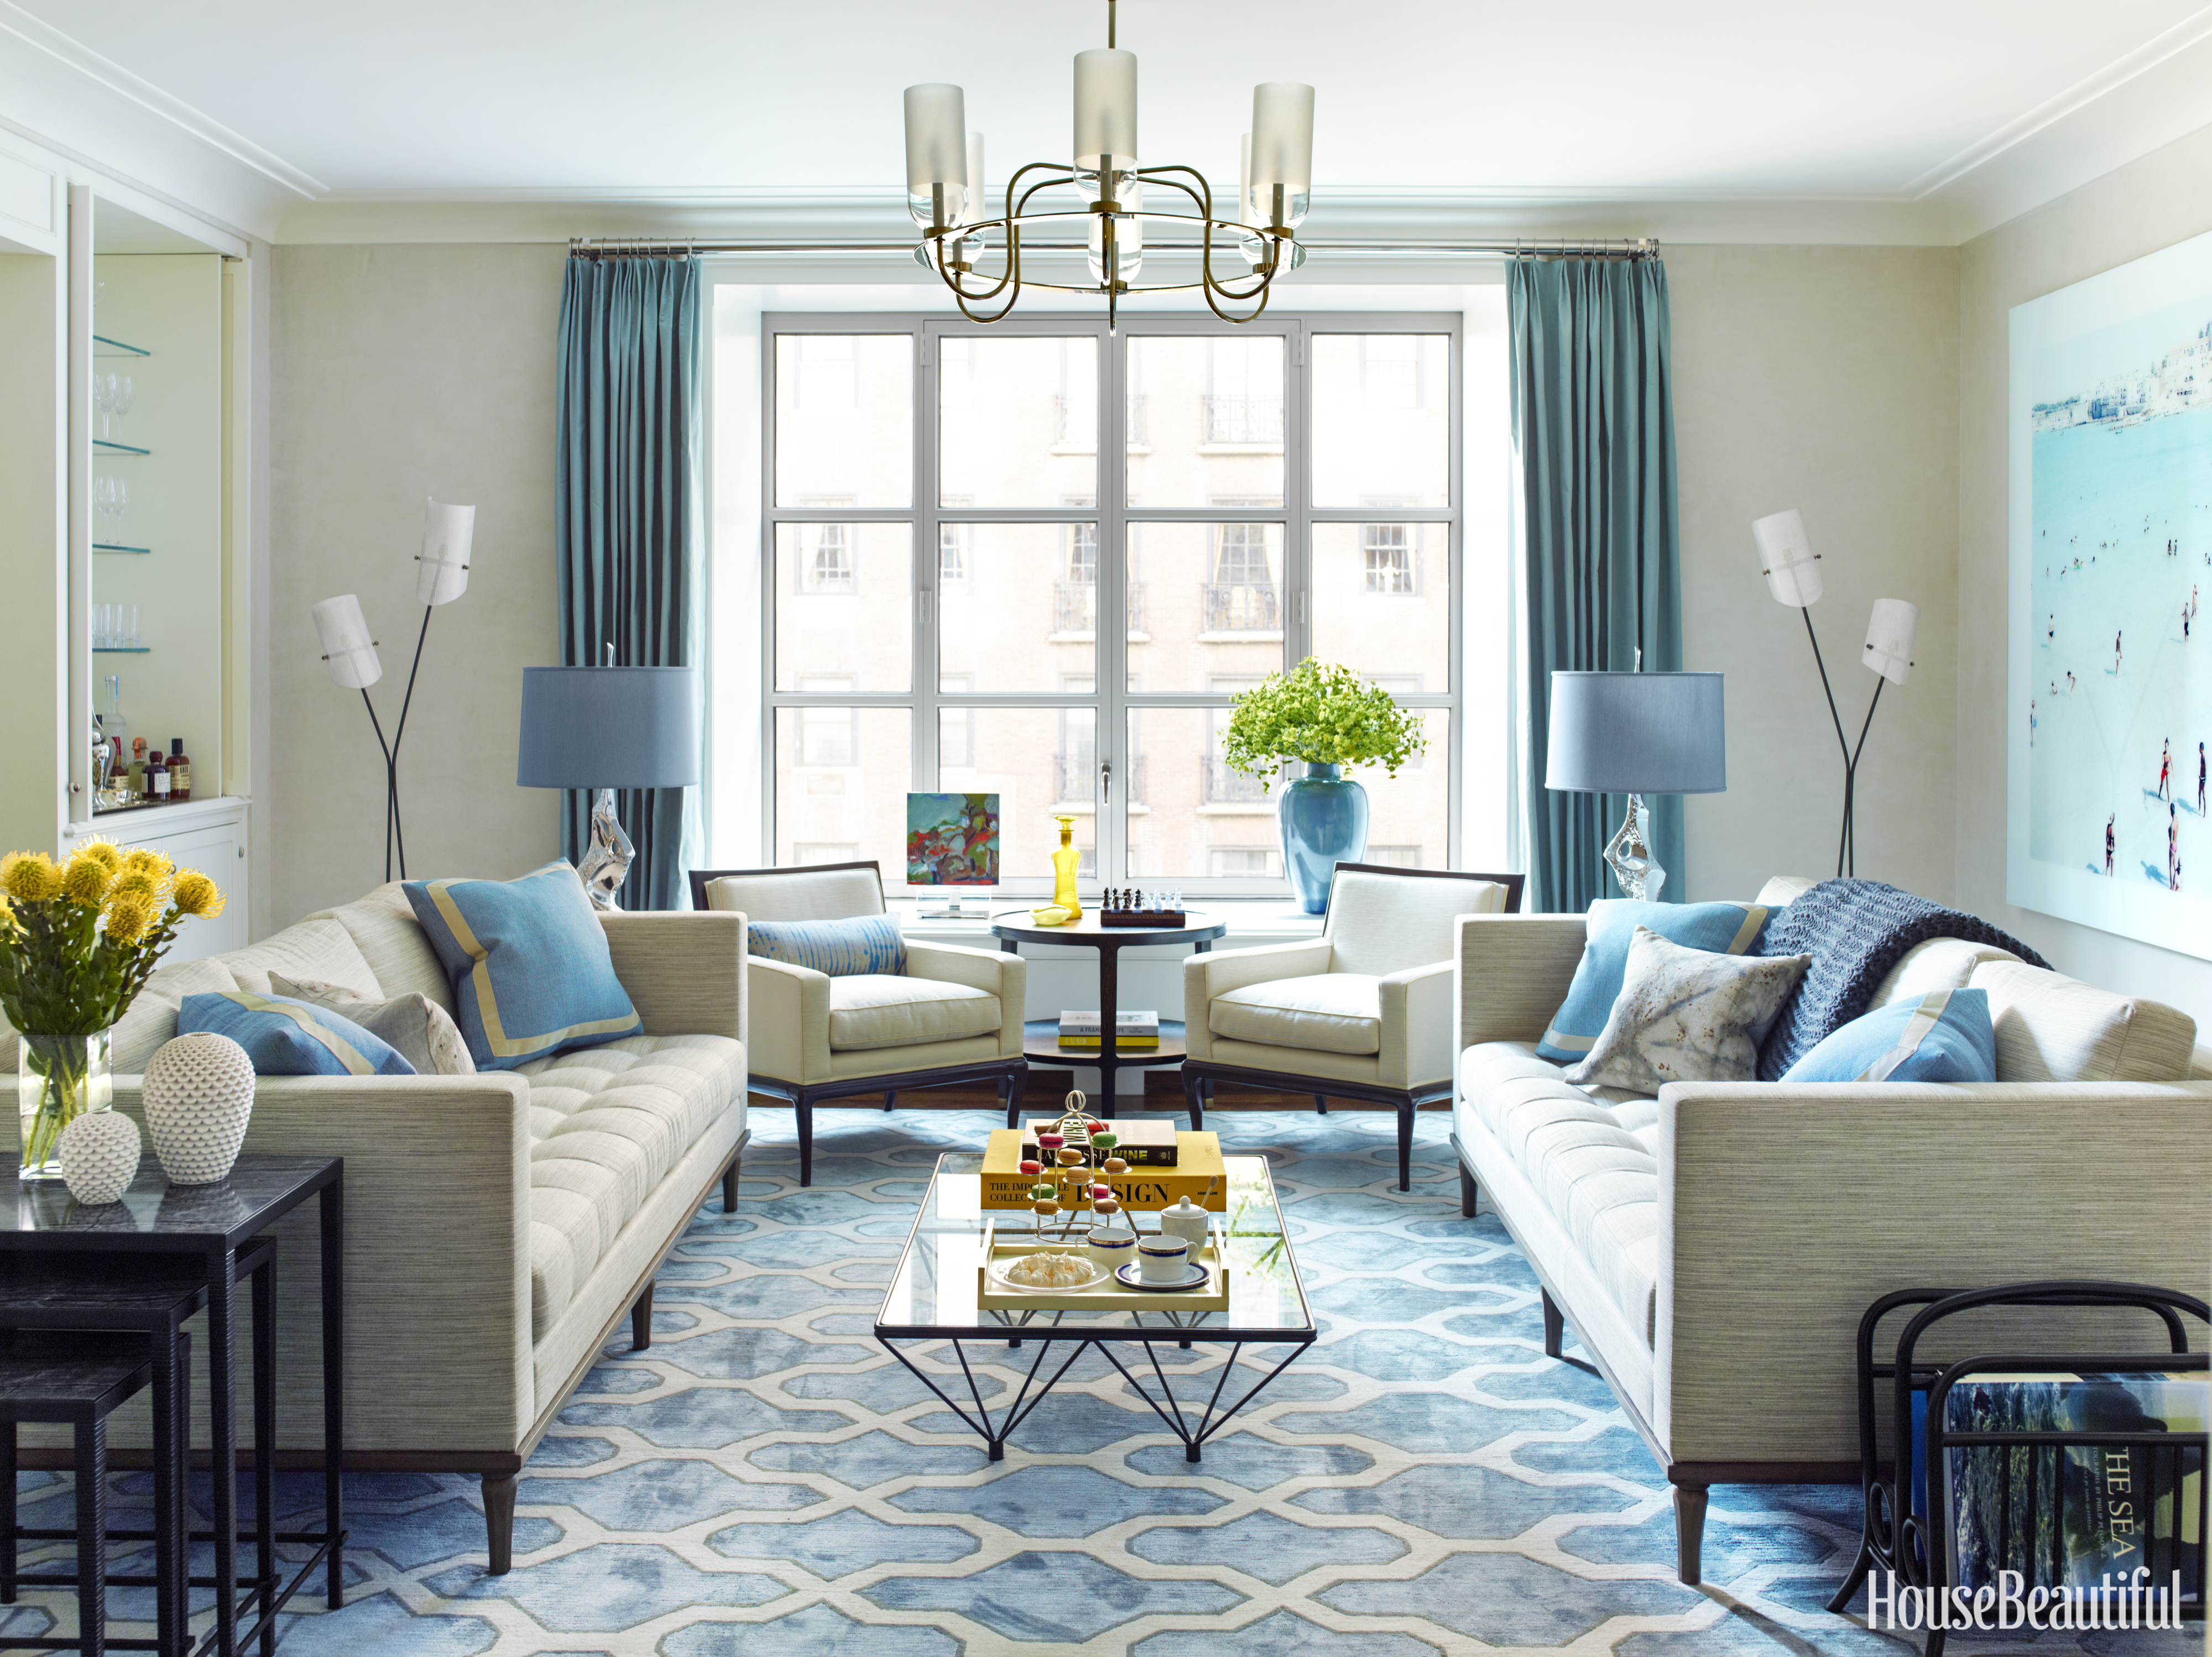 Blue Manhattan Apartment  Gideon Mendelson Interior Design. Blue Color Schemes For Living Rooms. Conga Room La Live. Feng Shui In The Living Room. Living Room Show Case. Kitchen Living Room Design. Cream And Red Living Room Ideas. Built In Cabinets For Living Room. Good Living Room Designs